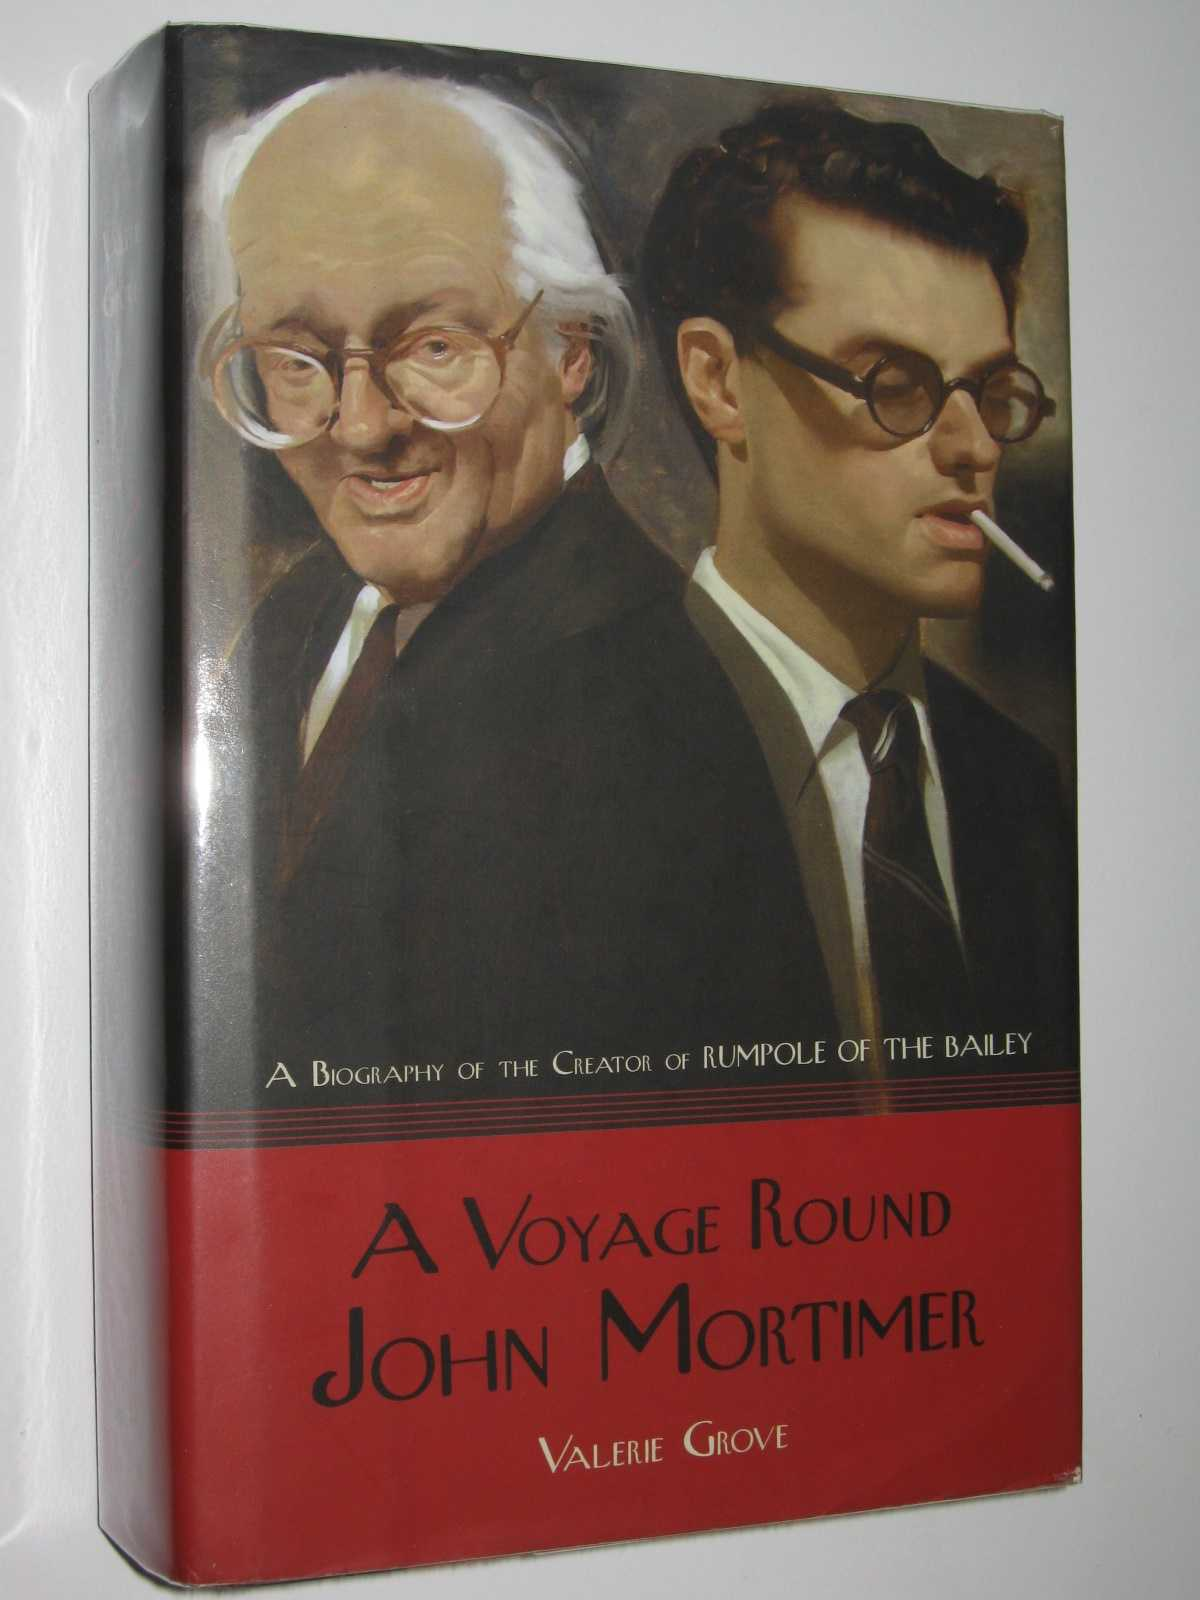 Image for A Voyage Round John Mortimer : A Biography of the Creator of Rumpole of the Bailey